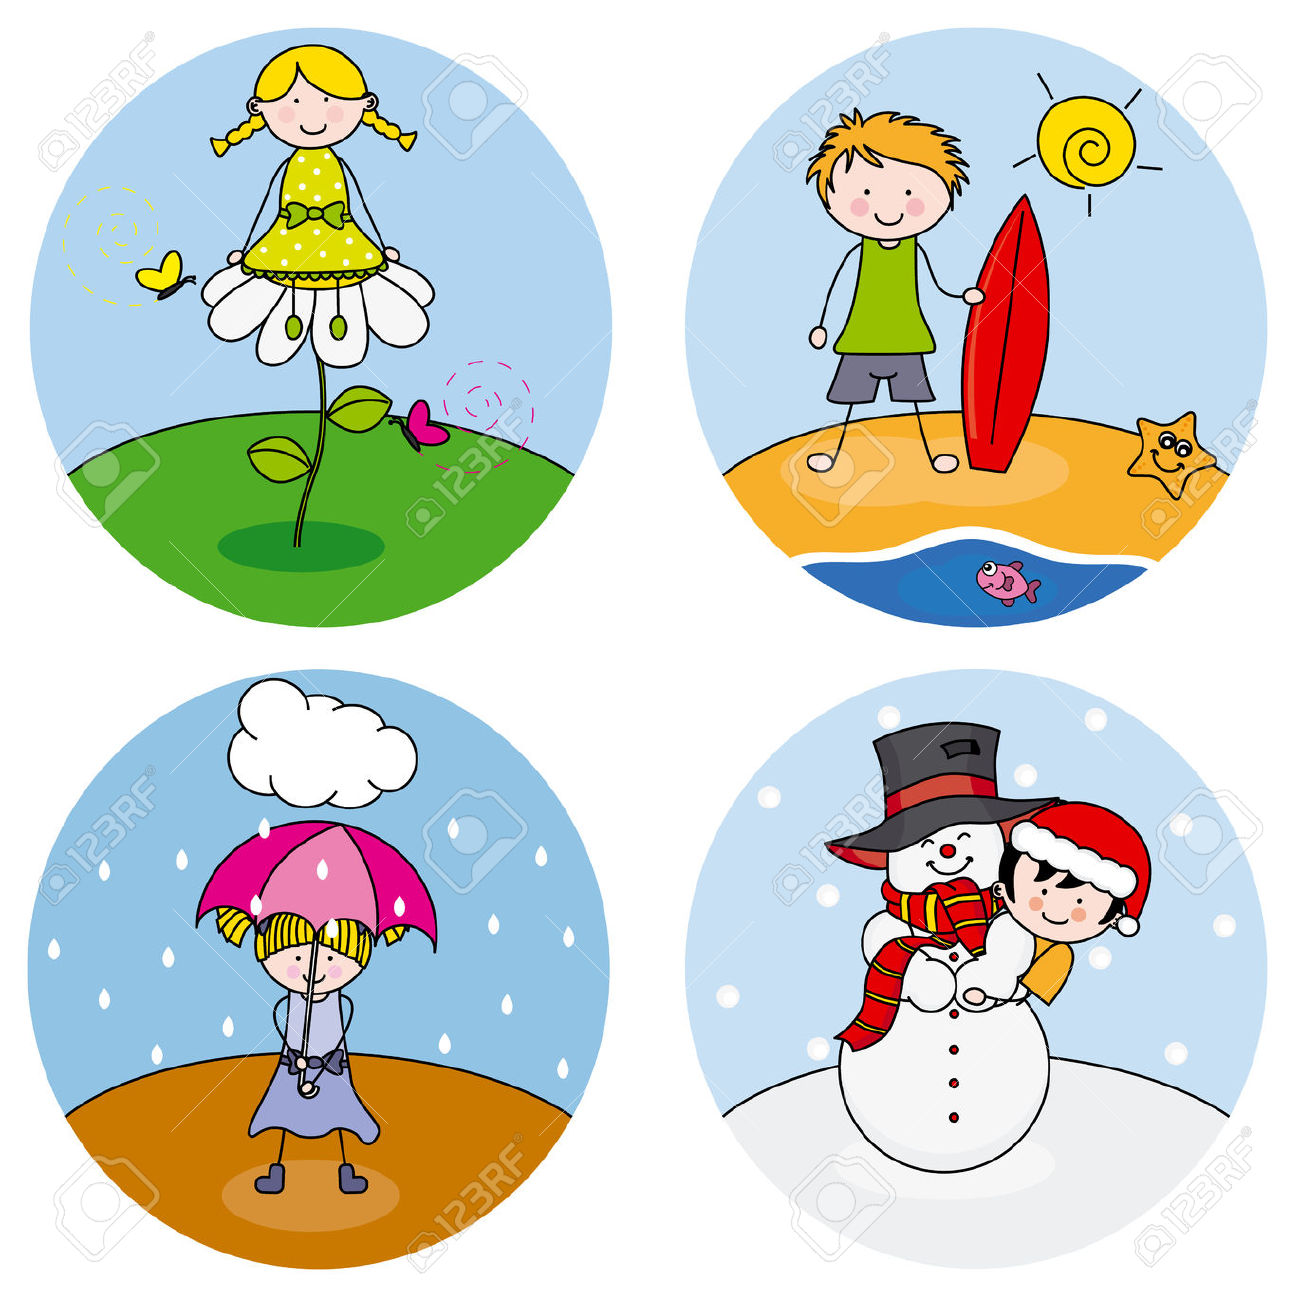 The four seasons clipart #10